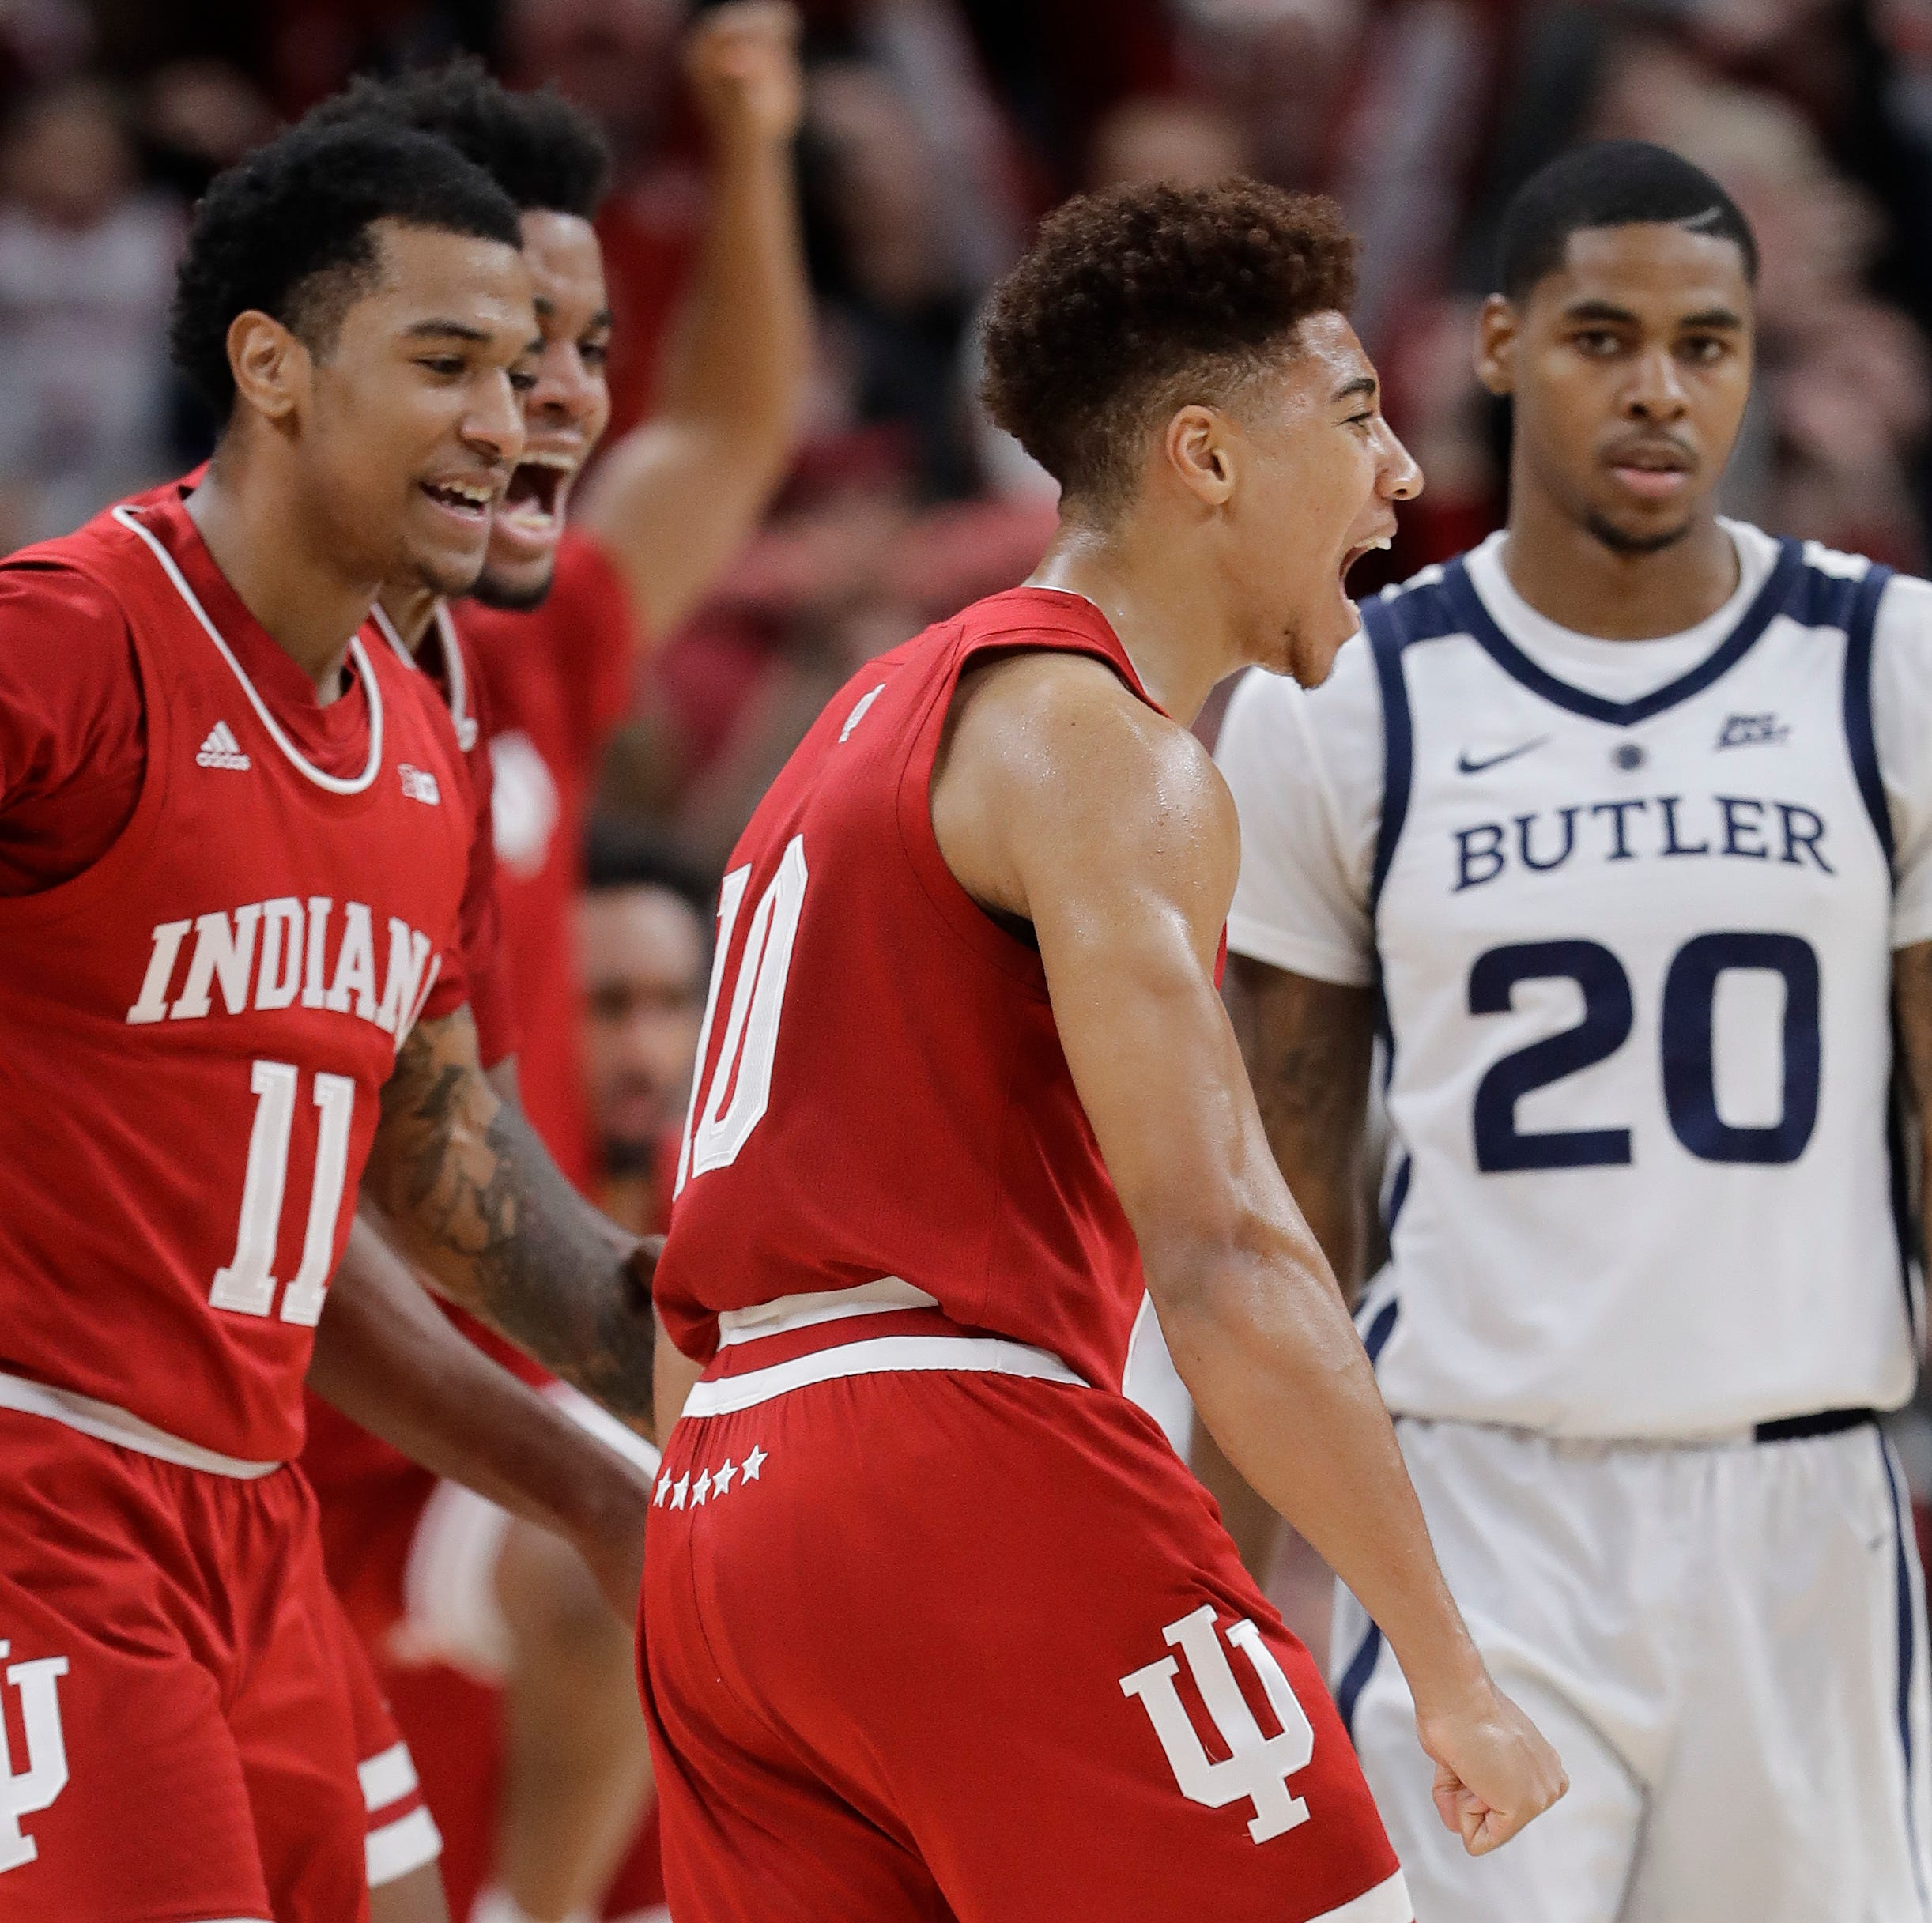 Indiana beats Butler with Rob Phinisee's wild buzzer-beater